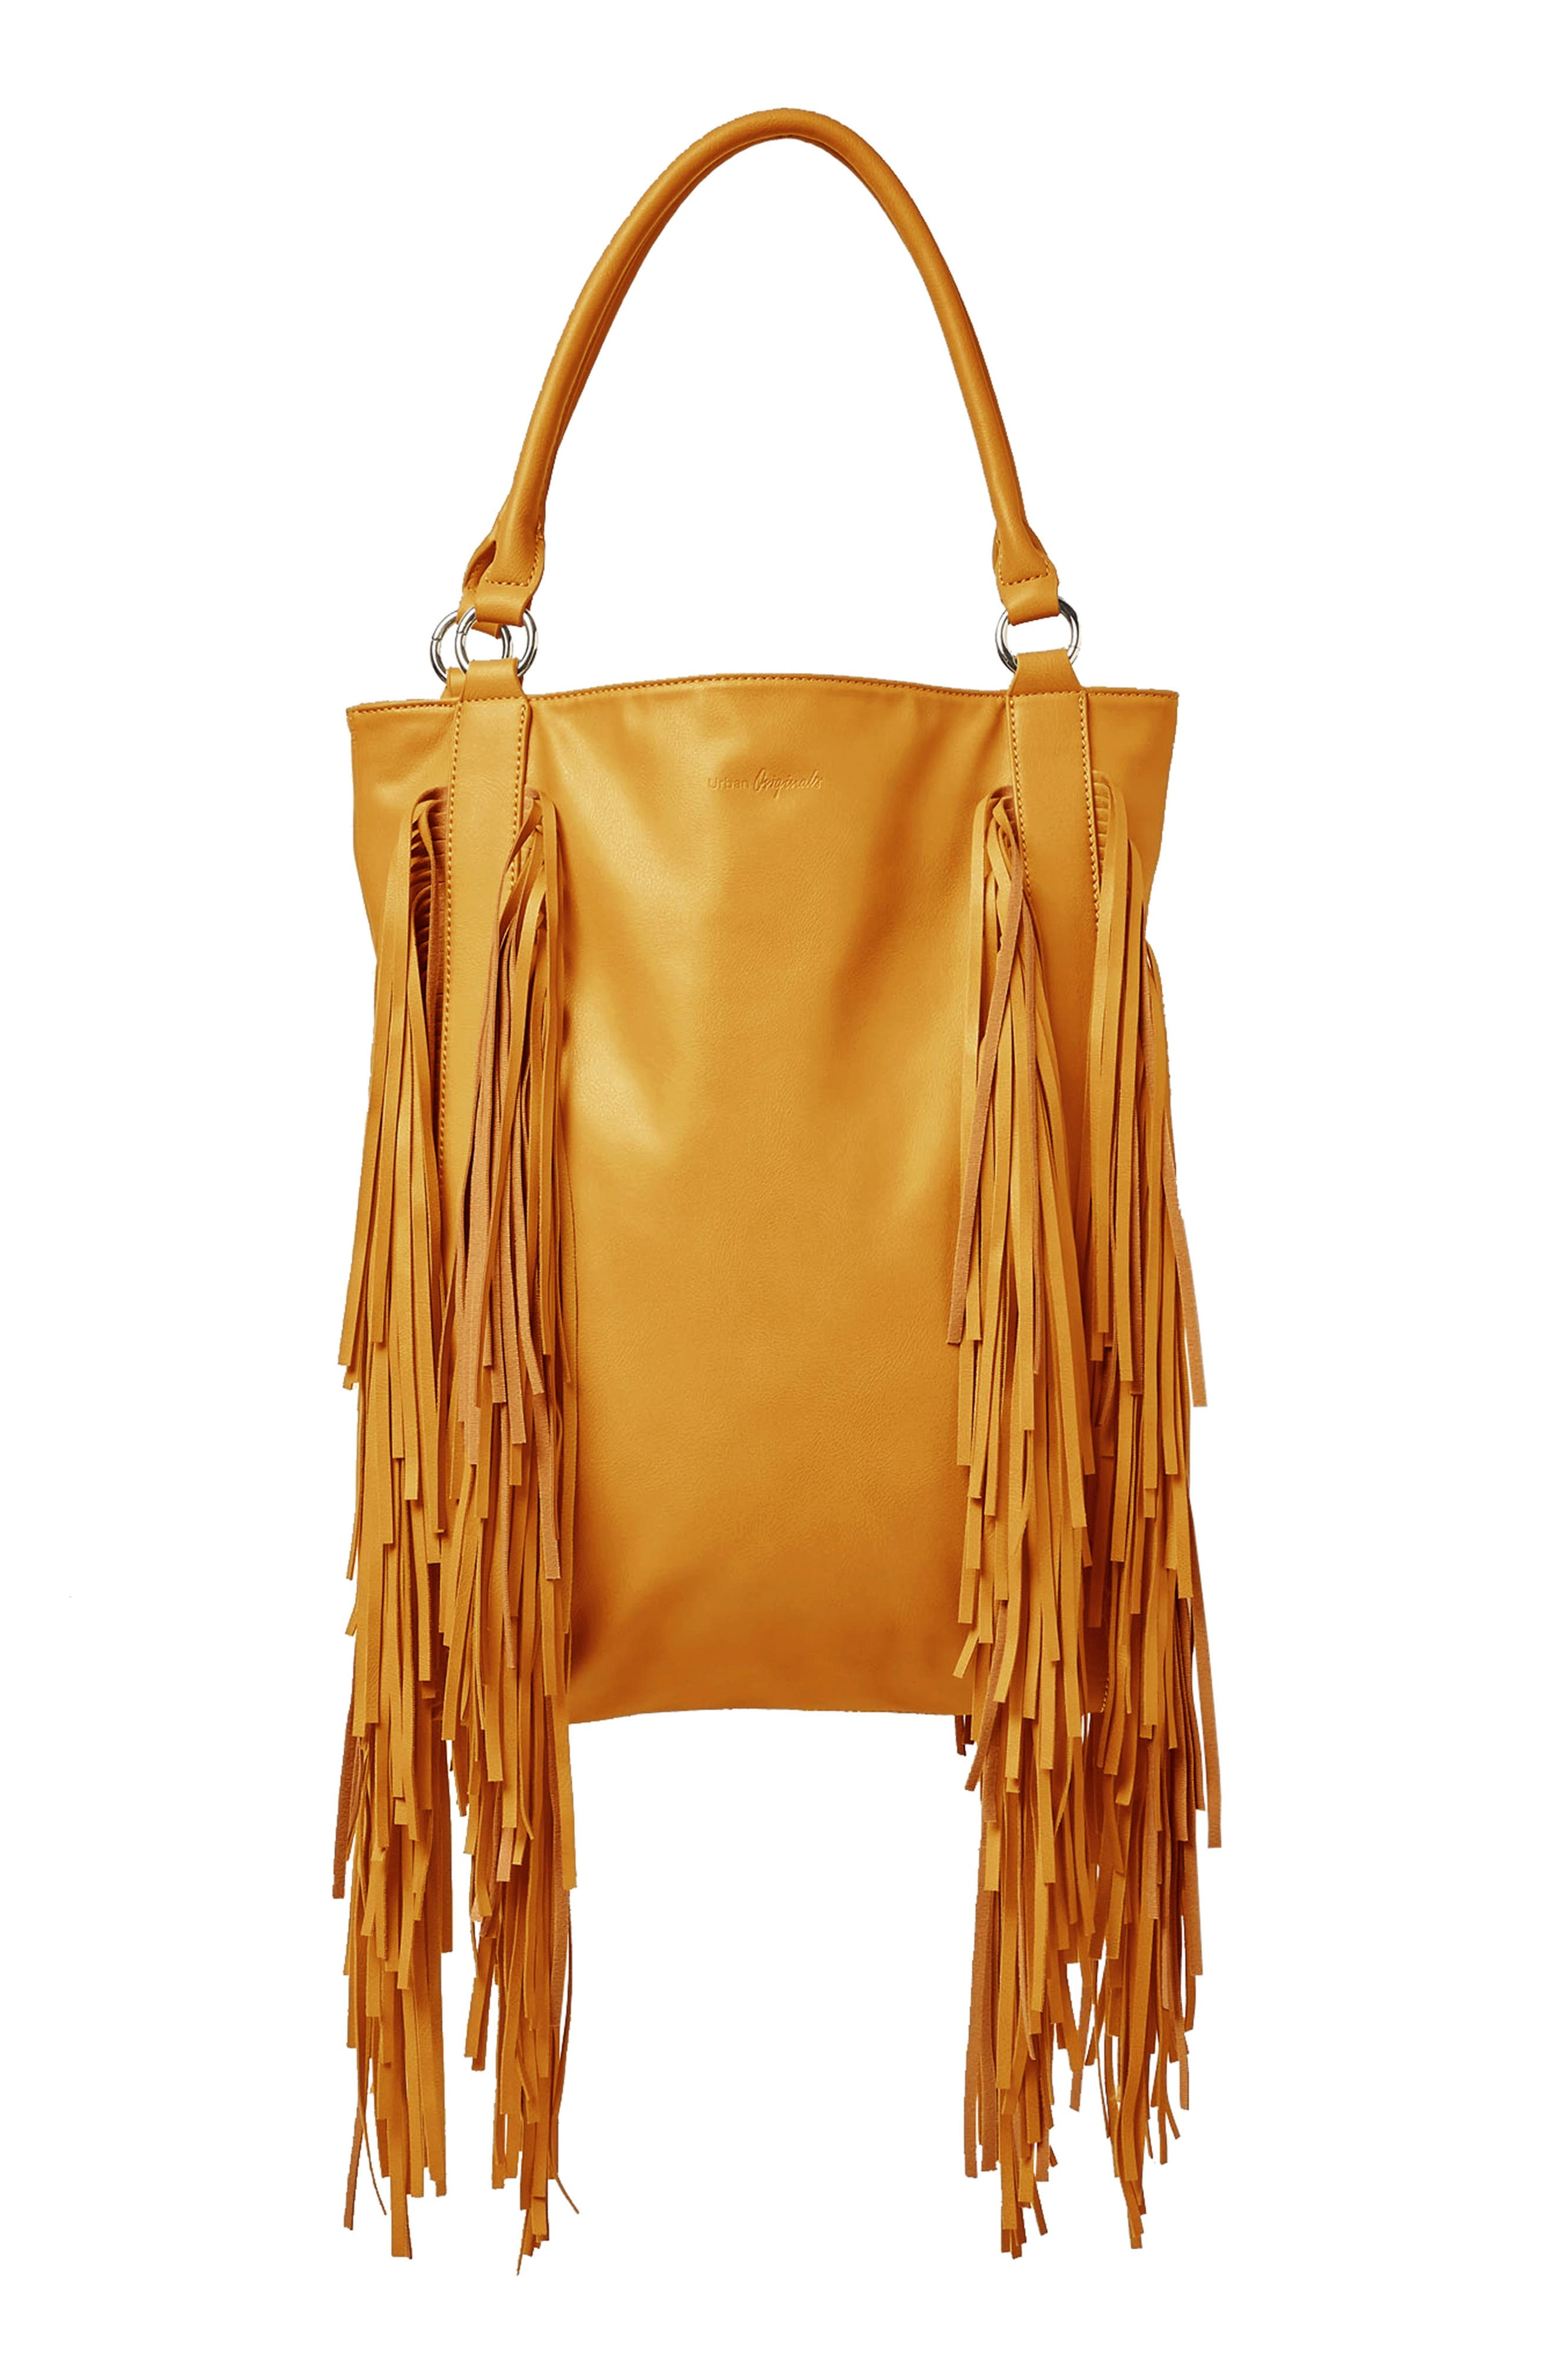 Crazy Love Vegan Leather Tote,                         Main,                         color, Mustard